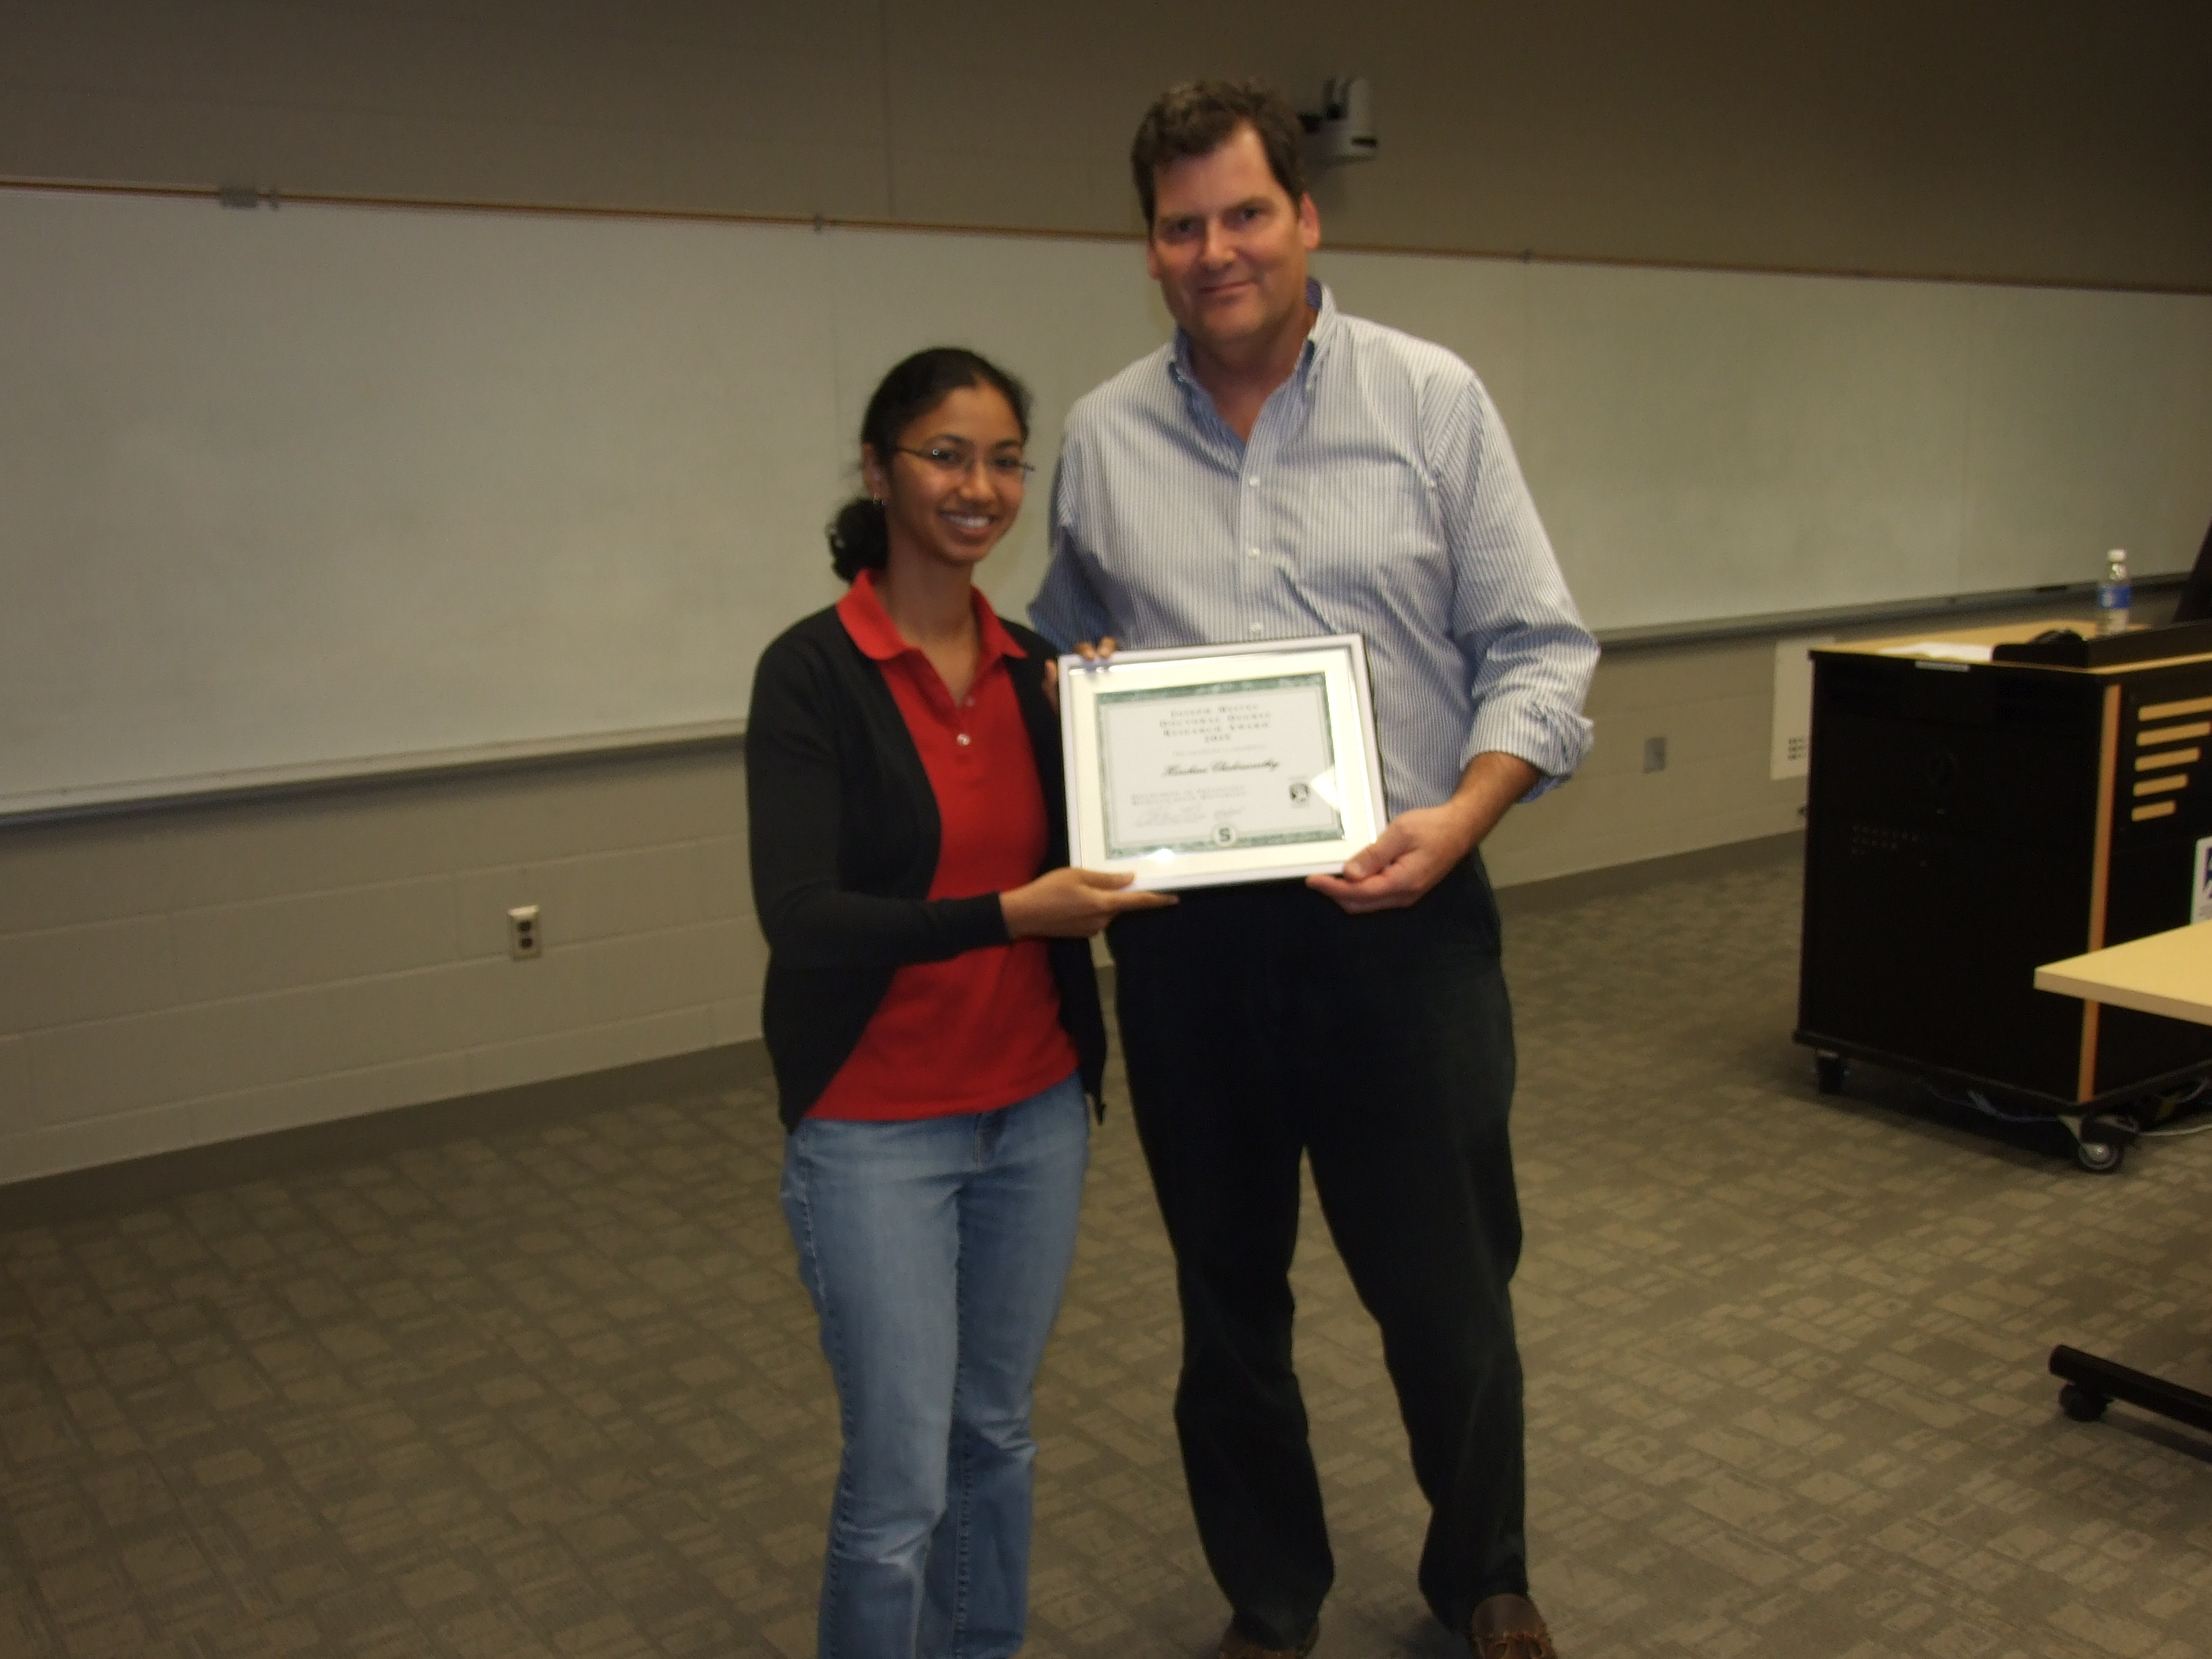 Harshini Chakravarthy receiving an award from Dr. C. Lee Cox